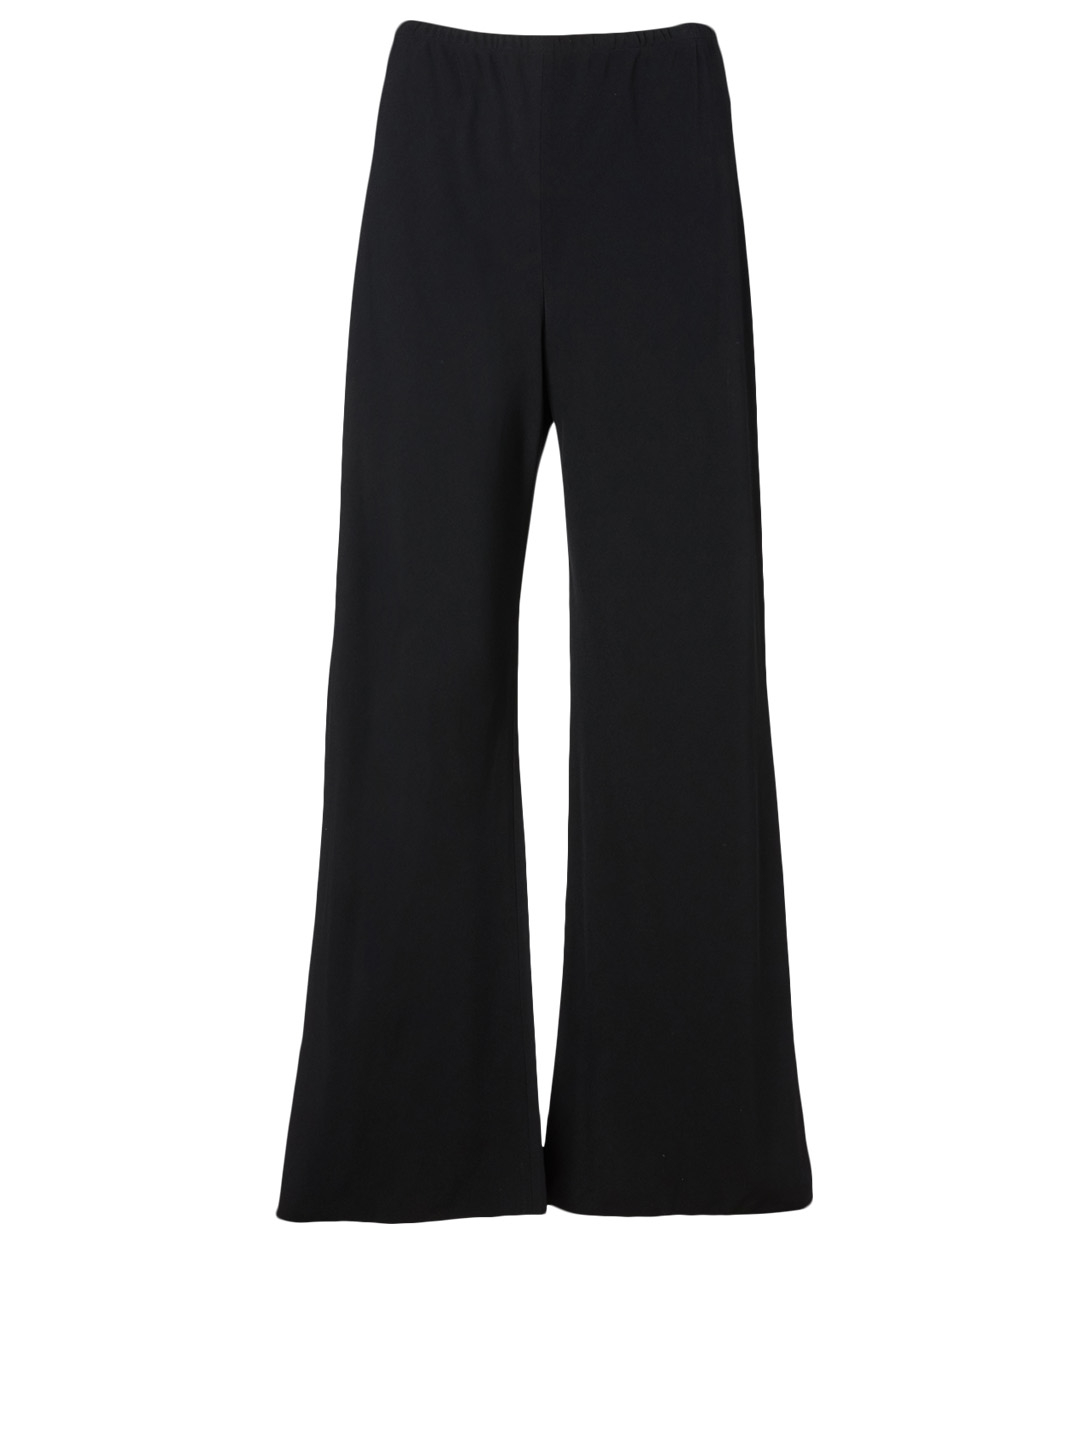 THE ROW Gala Wide-Leg Pants Women's Black